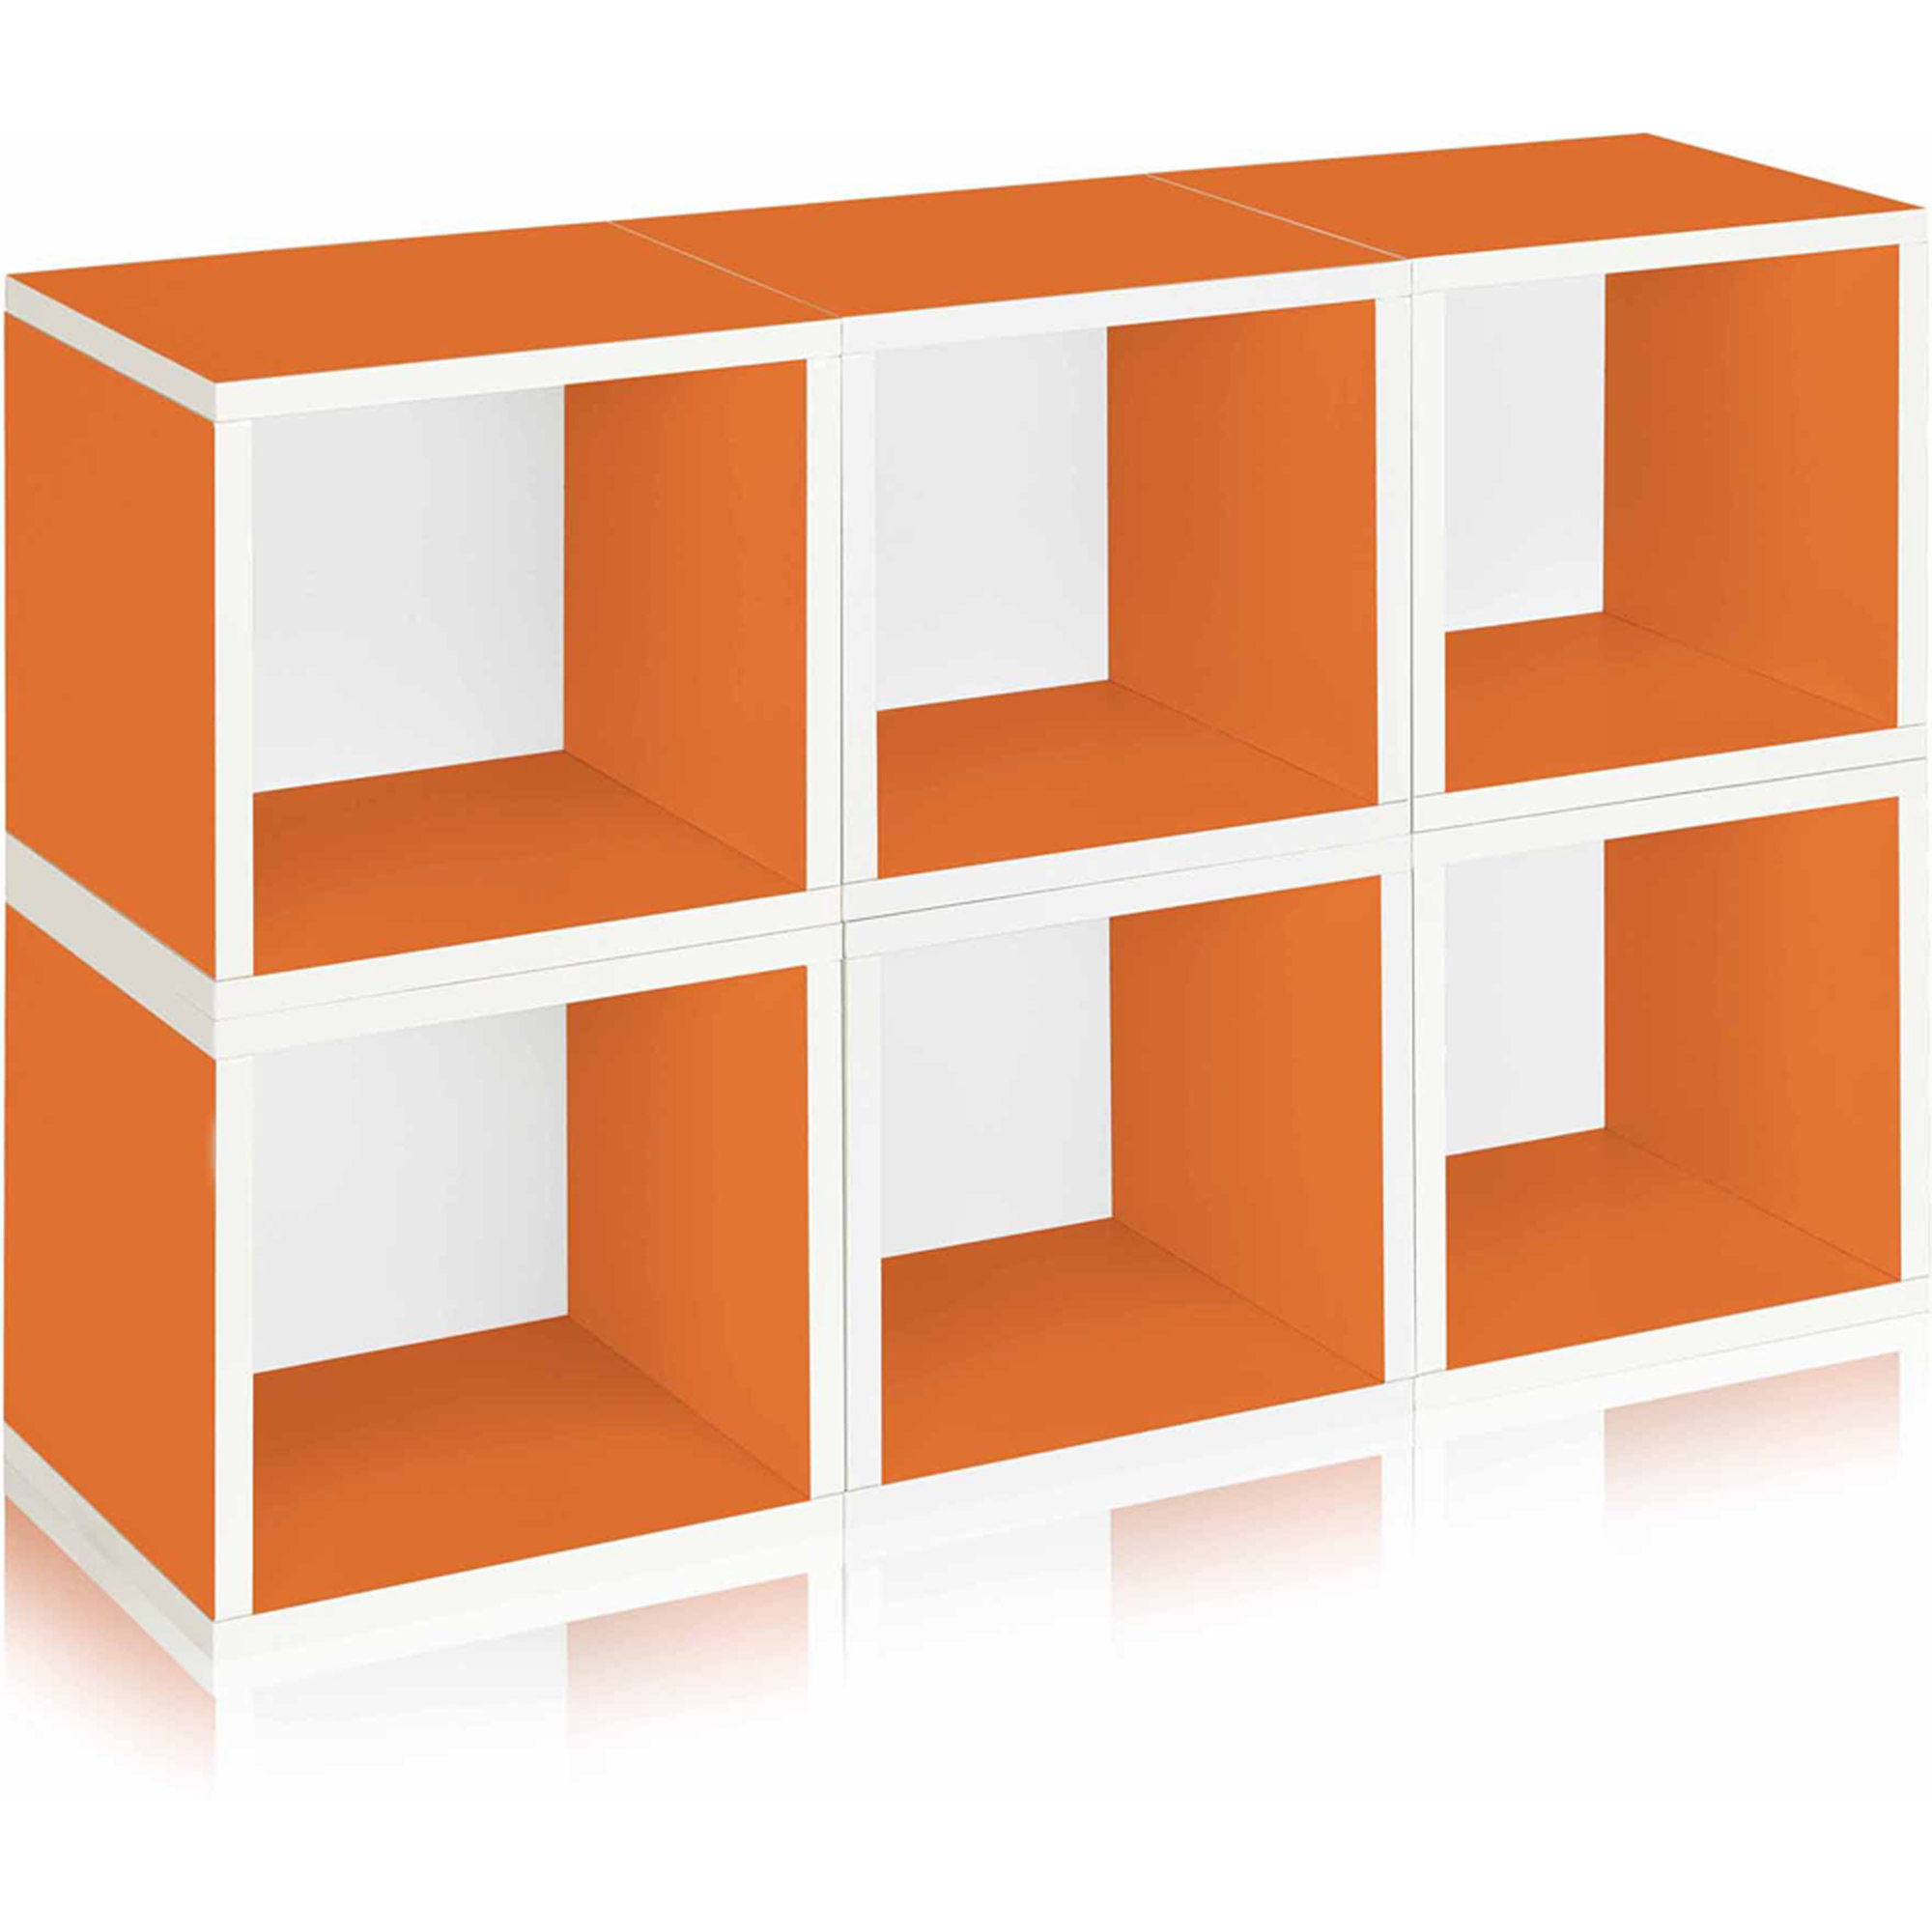 Way Basics Eco Stackable Modular Storage Cubes, Orange, 6-Pack